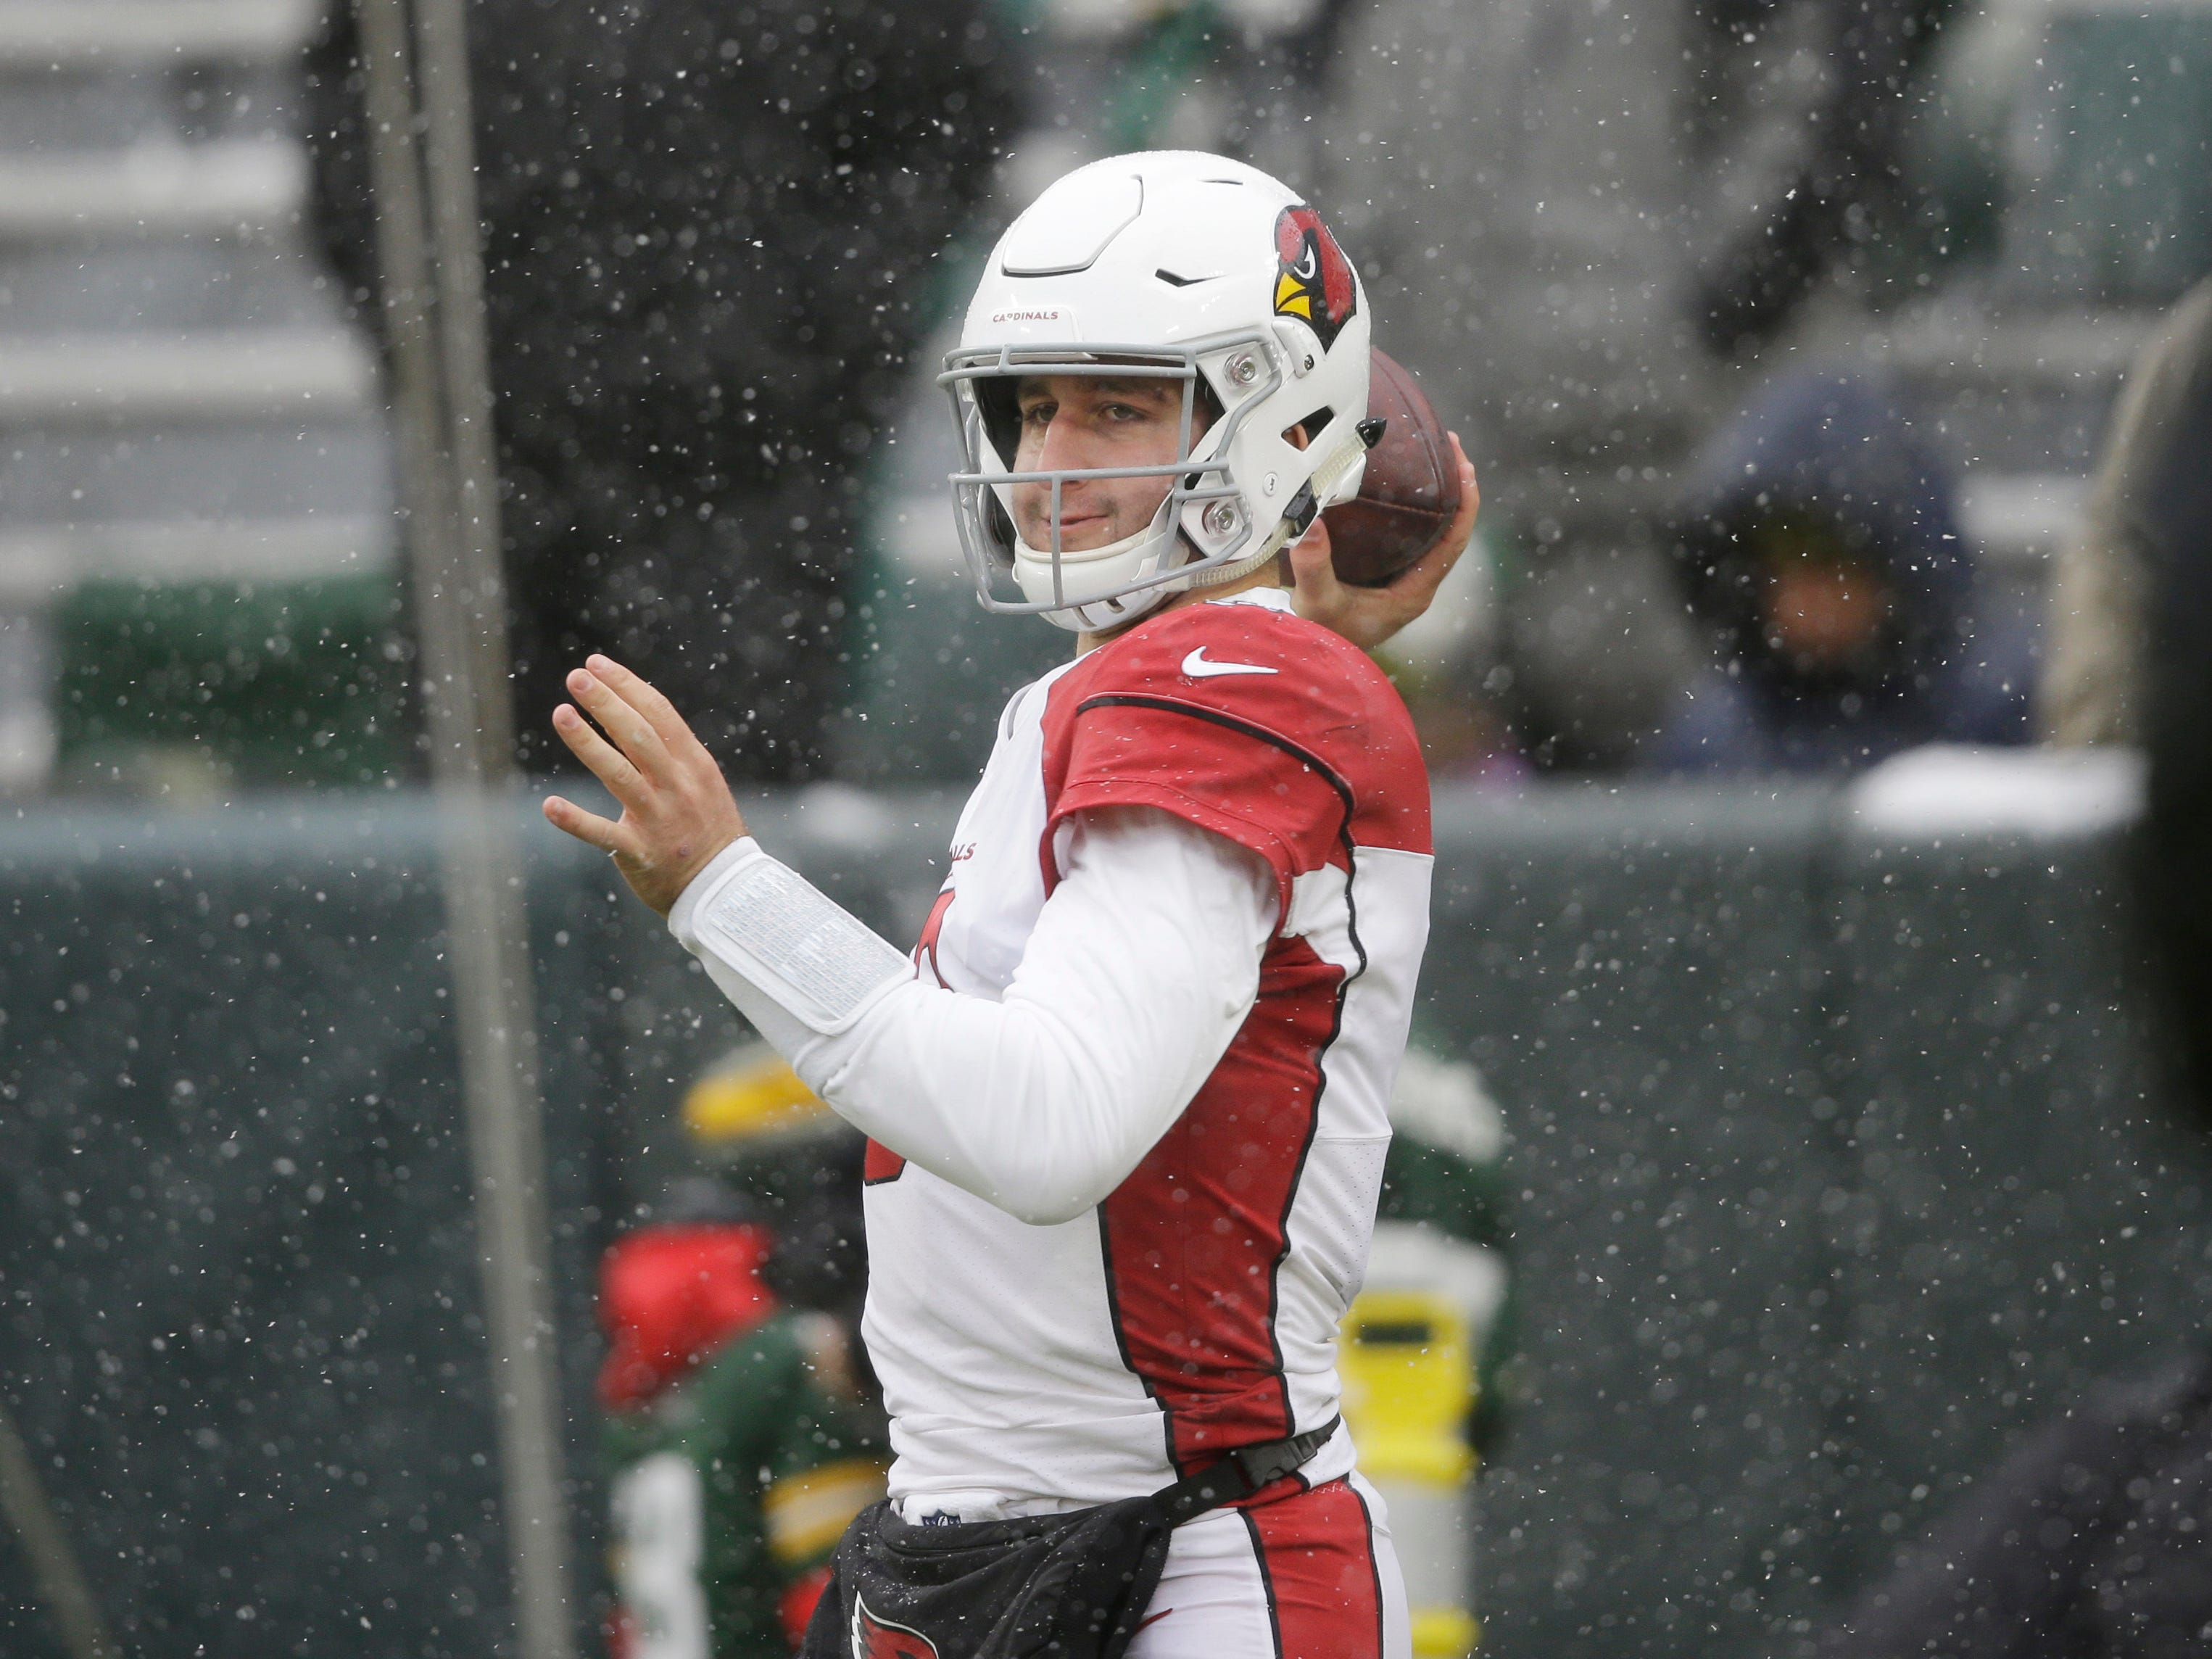 Arizona Cardinals quarterback Josh Rosen warms up before an NFL football game between the Green Bay Packers and the Arizona Cardinals Sunday, Dec. 2, 2018, in Green Bay, Wis. (AP Photo/Jeffrey Phelps)